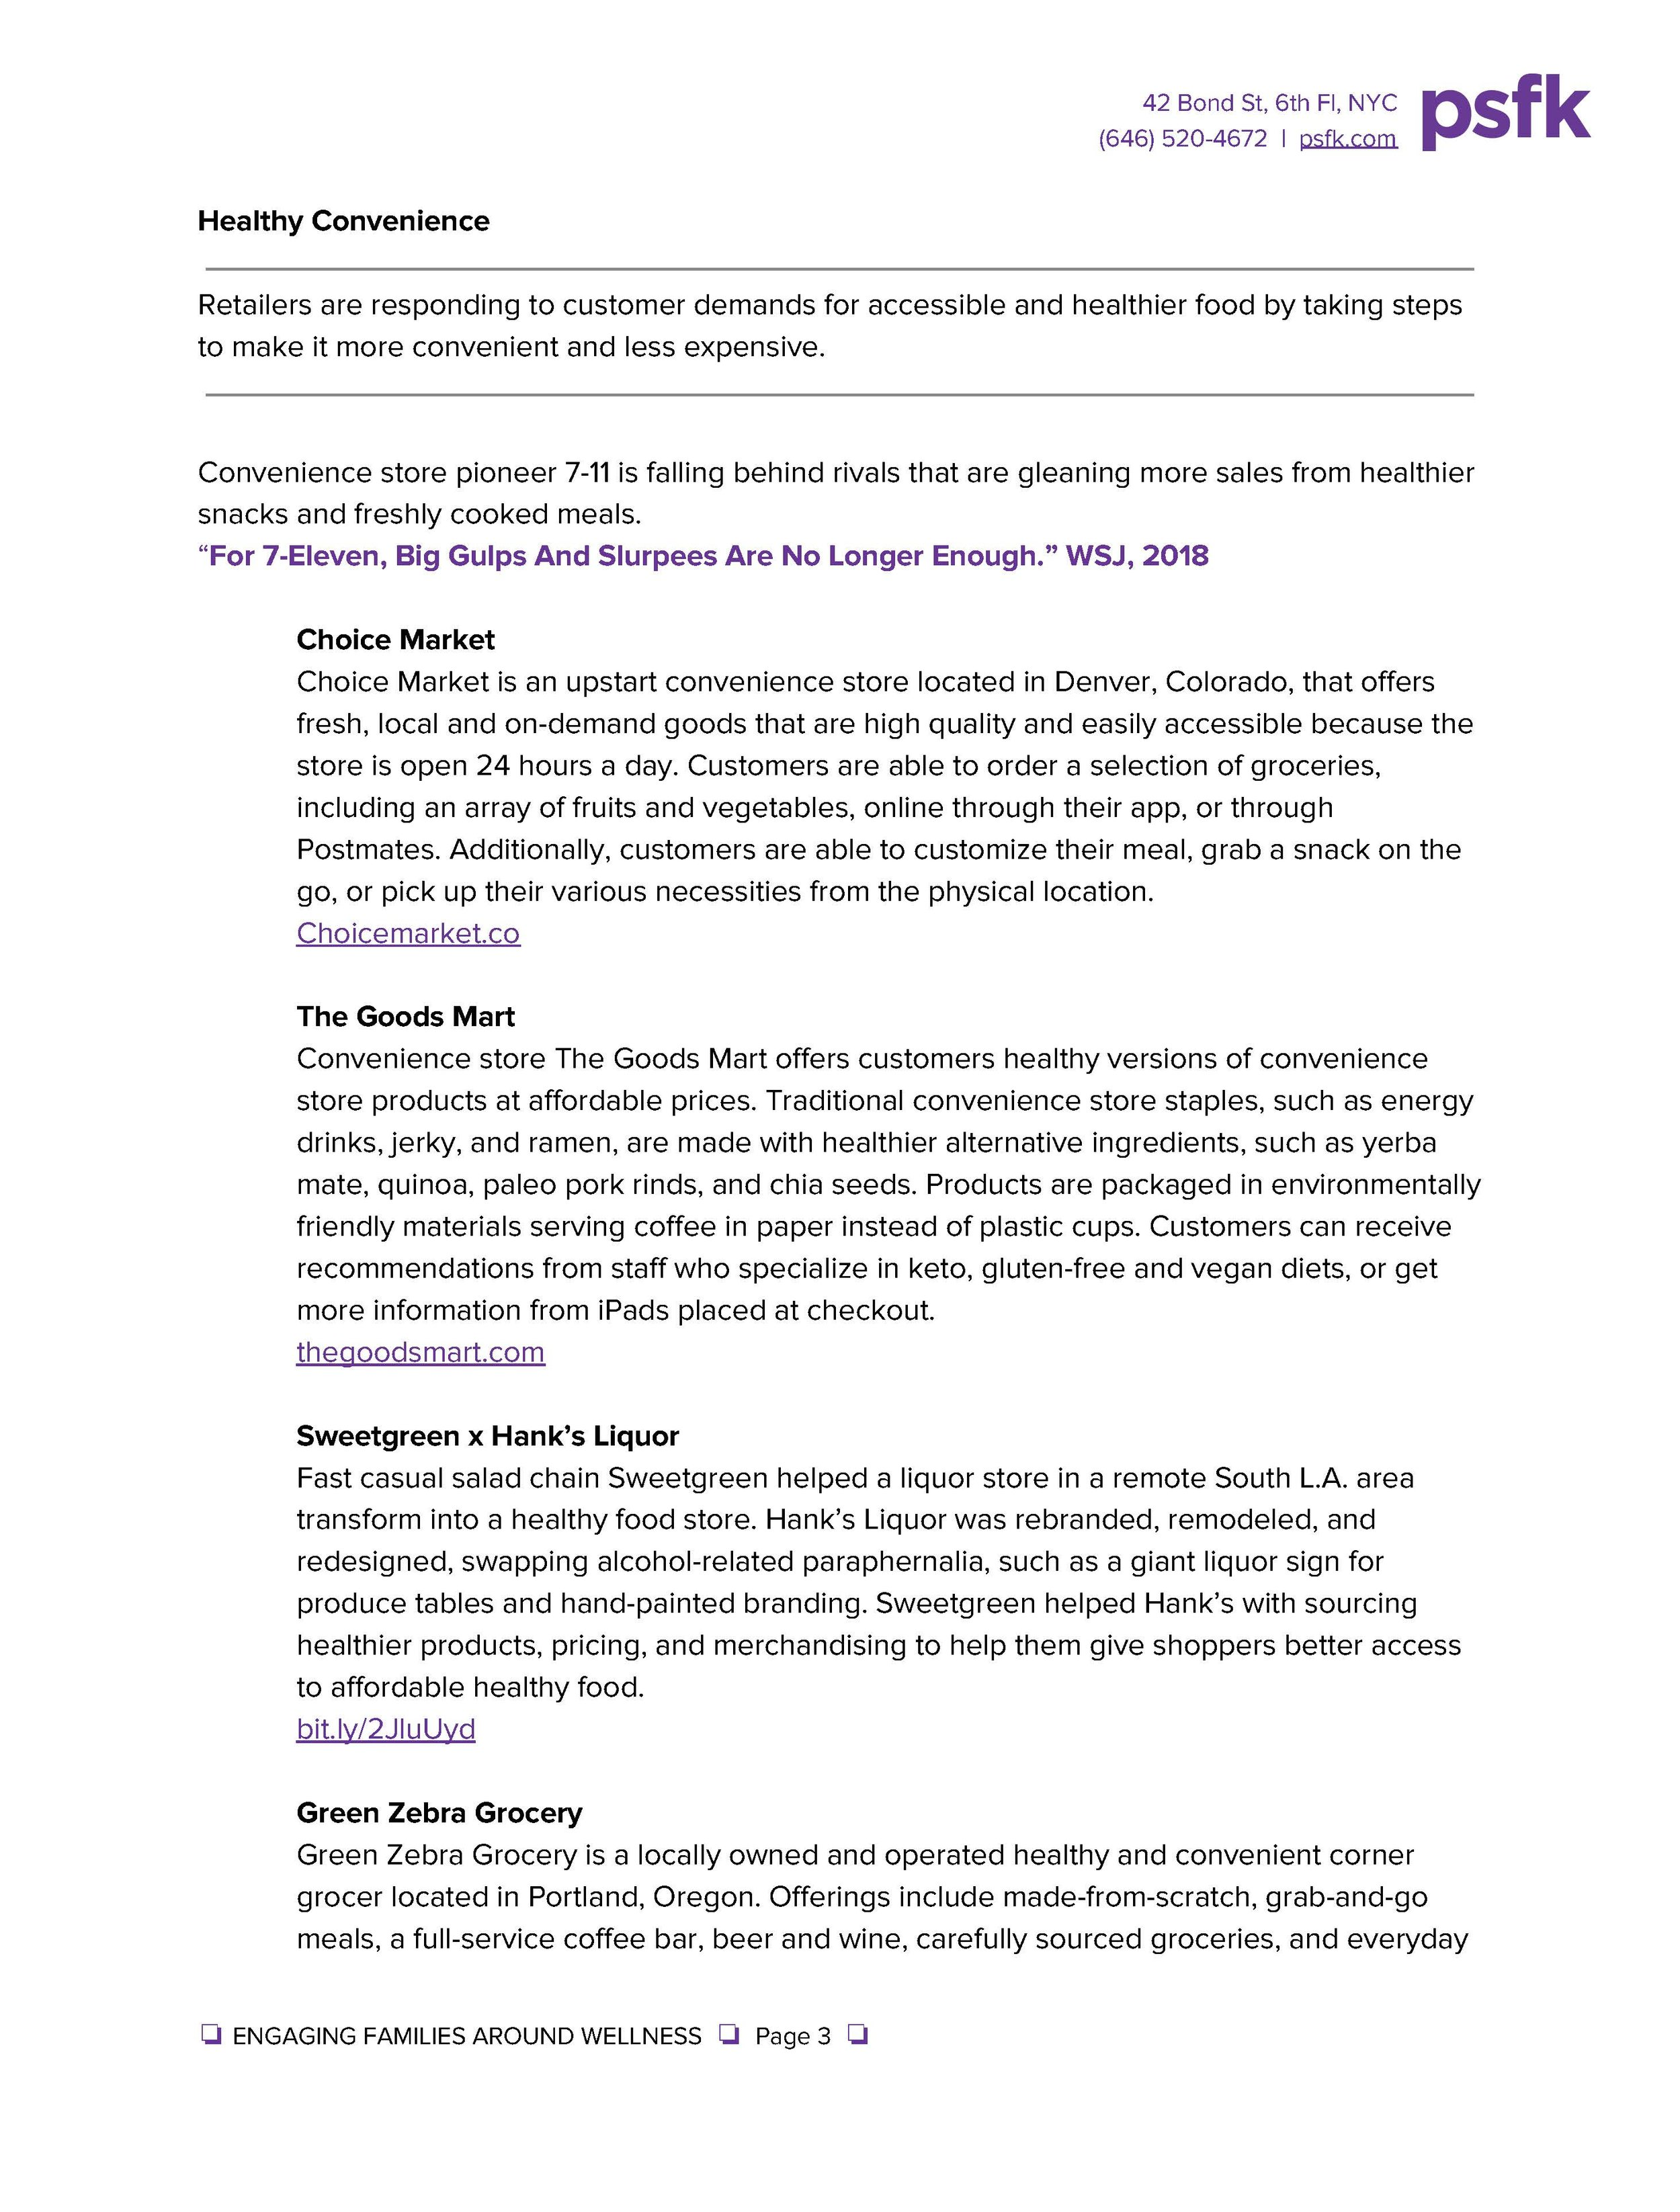 PSFK_Paper_Engaging_Families_Wellness_Page_03.jpg